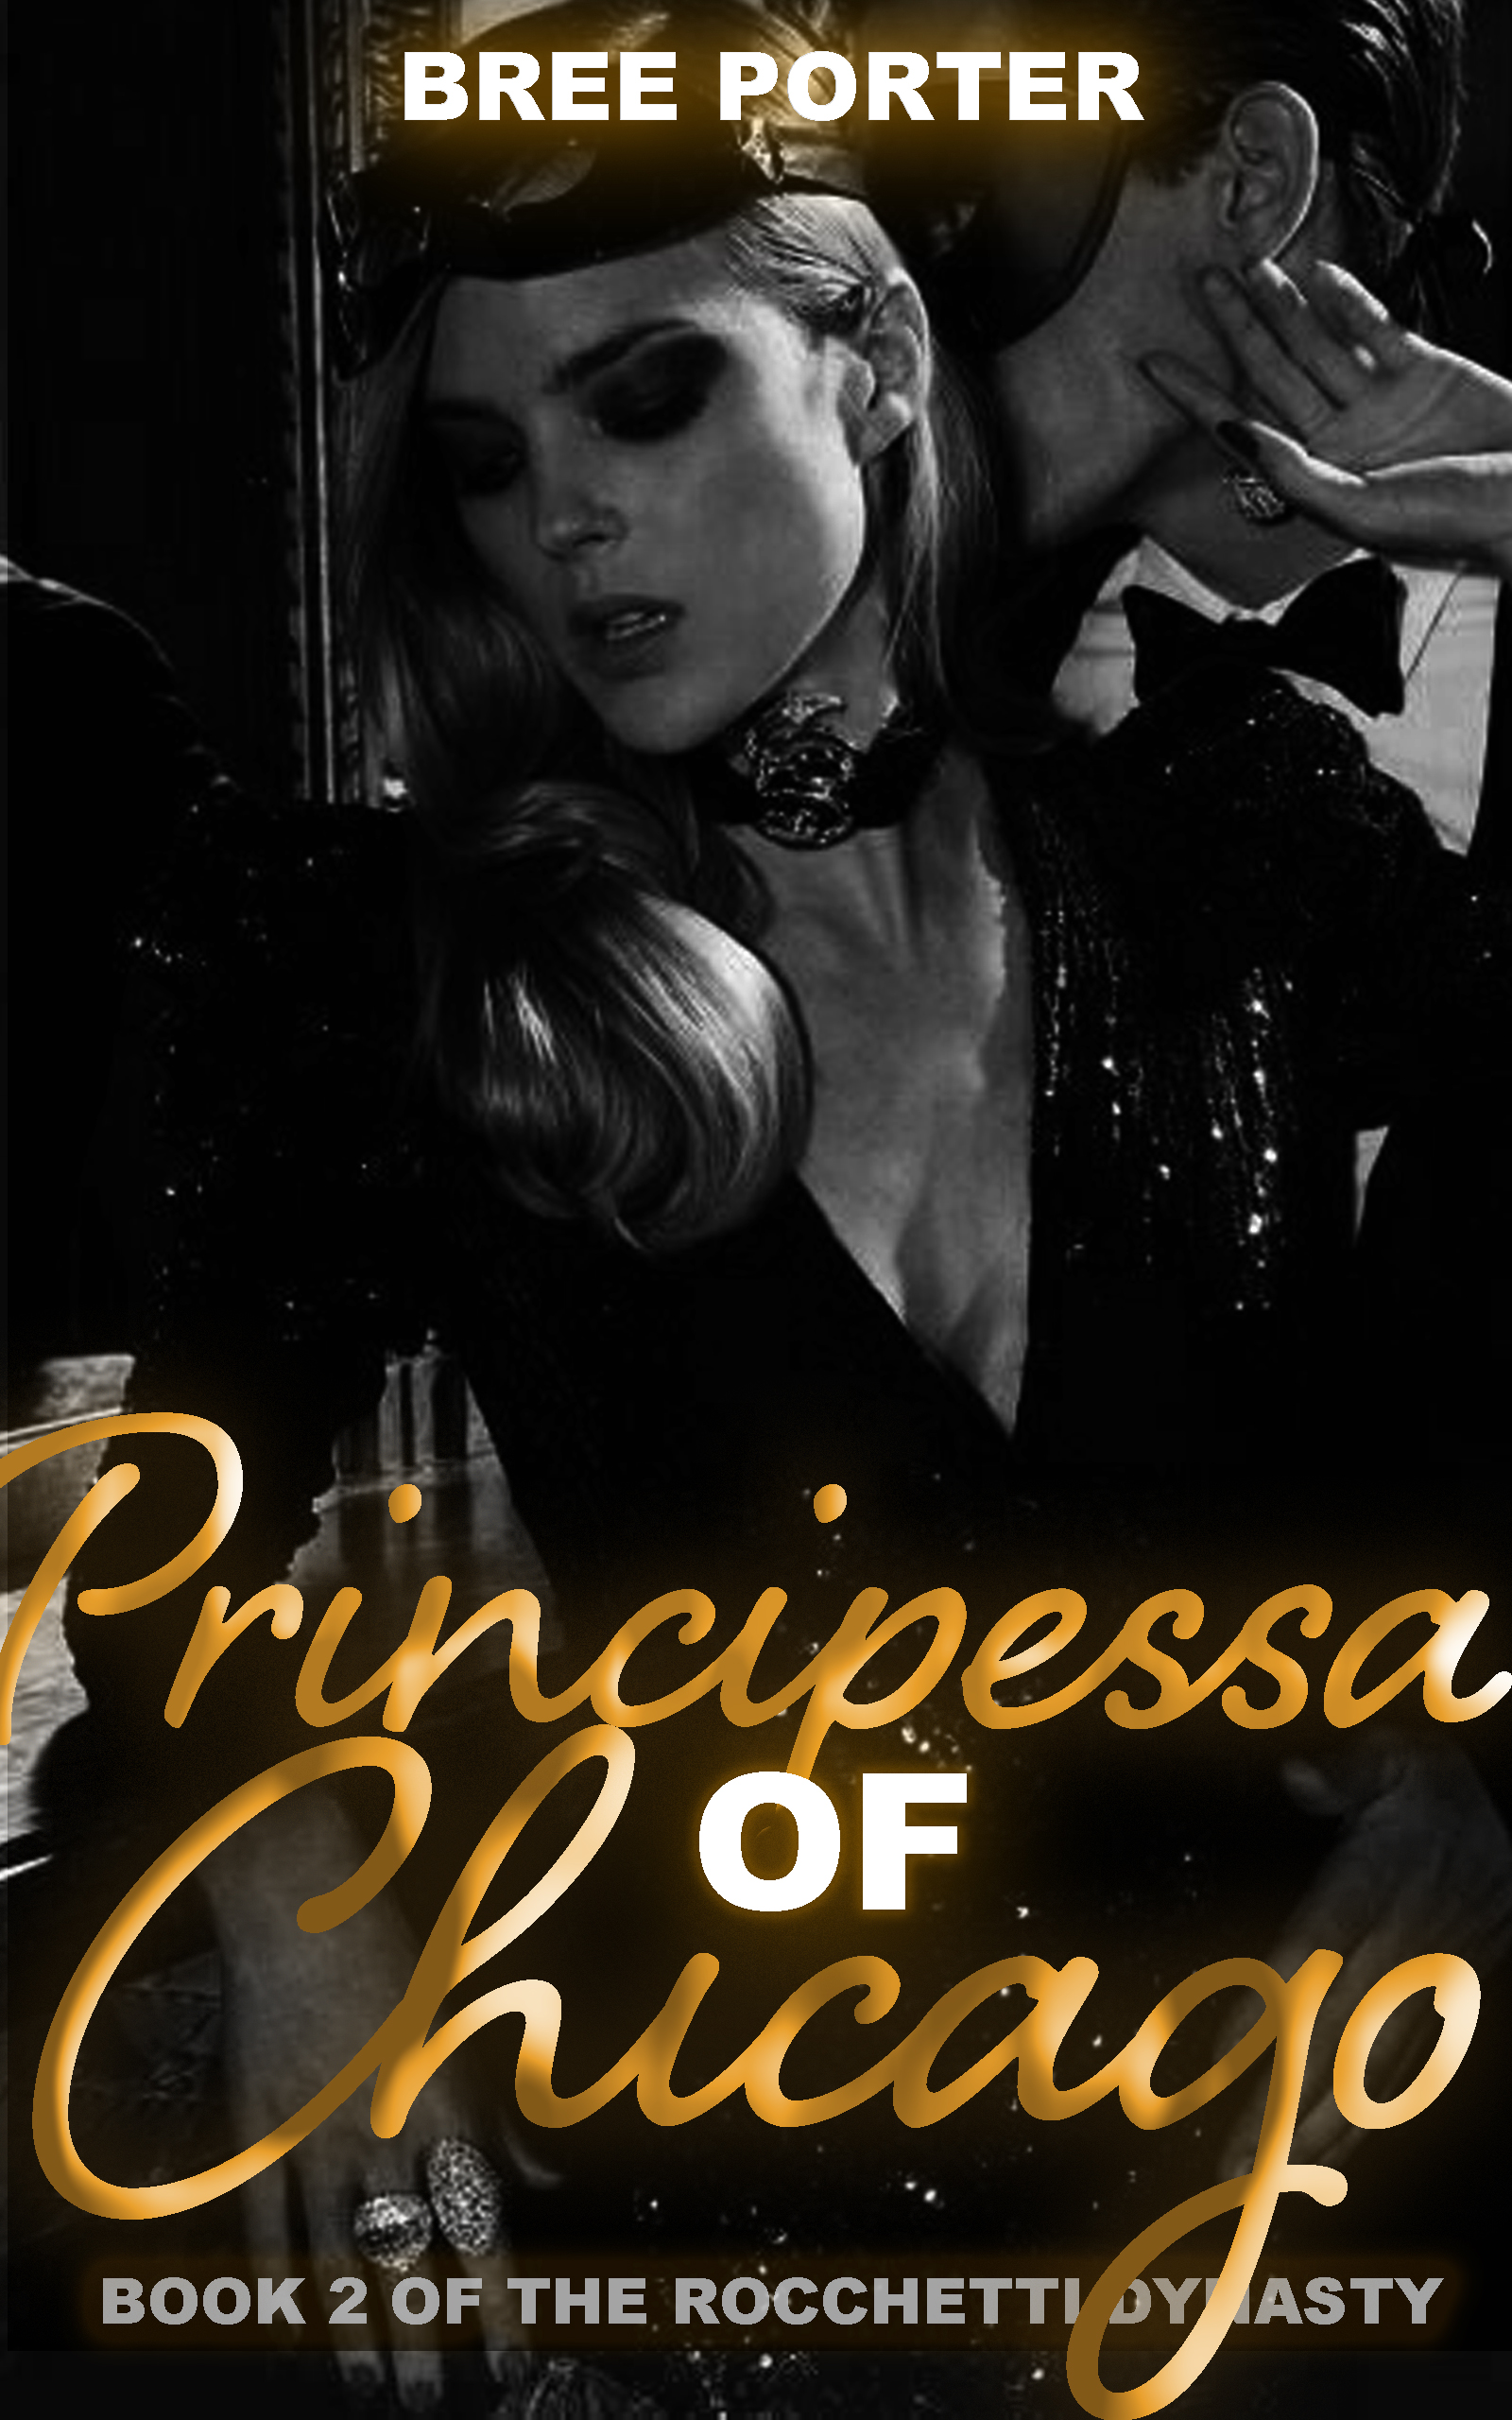 Principessa of Chicago (The Rocchetti Dynasty #2) by Bree Porter